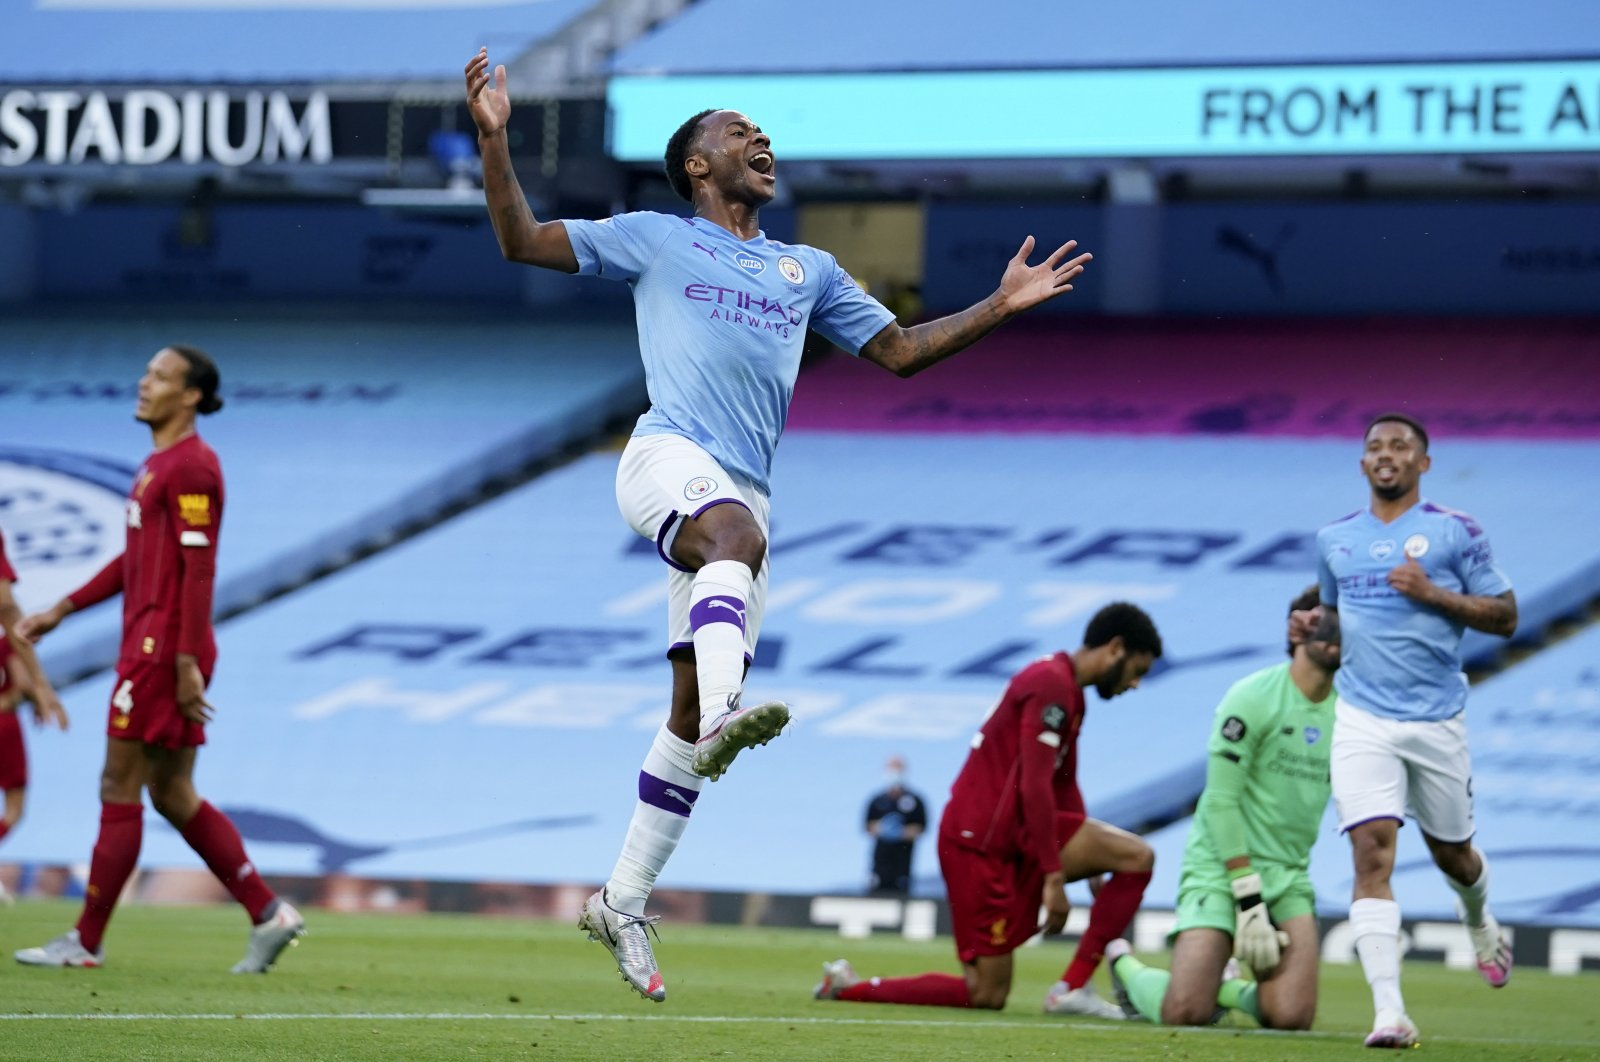 Manchester City's Raheem Sterling celebrates after scoring his team's second goal during the Premier League match against Liverpool in Manchester, England, July 2, 2020. (AP Photo)